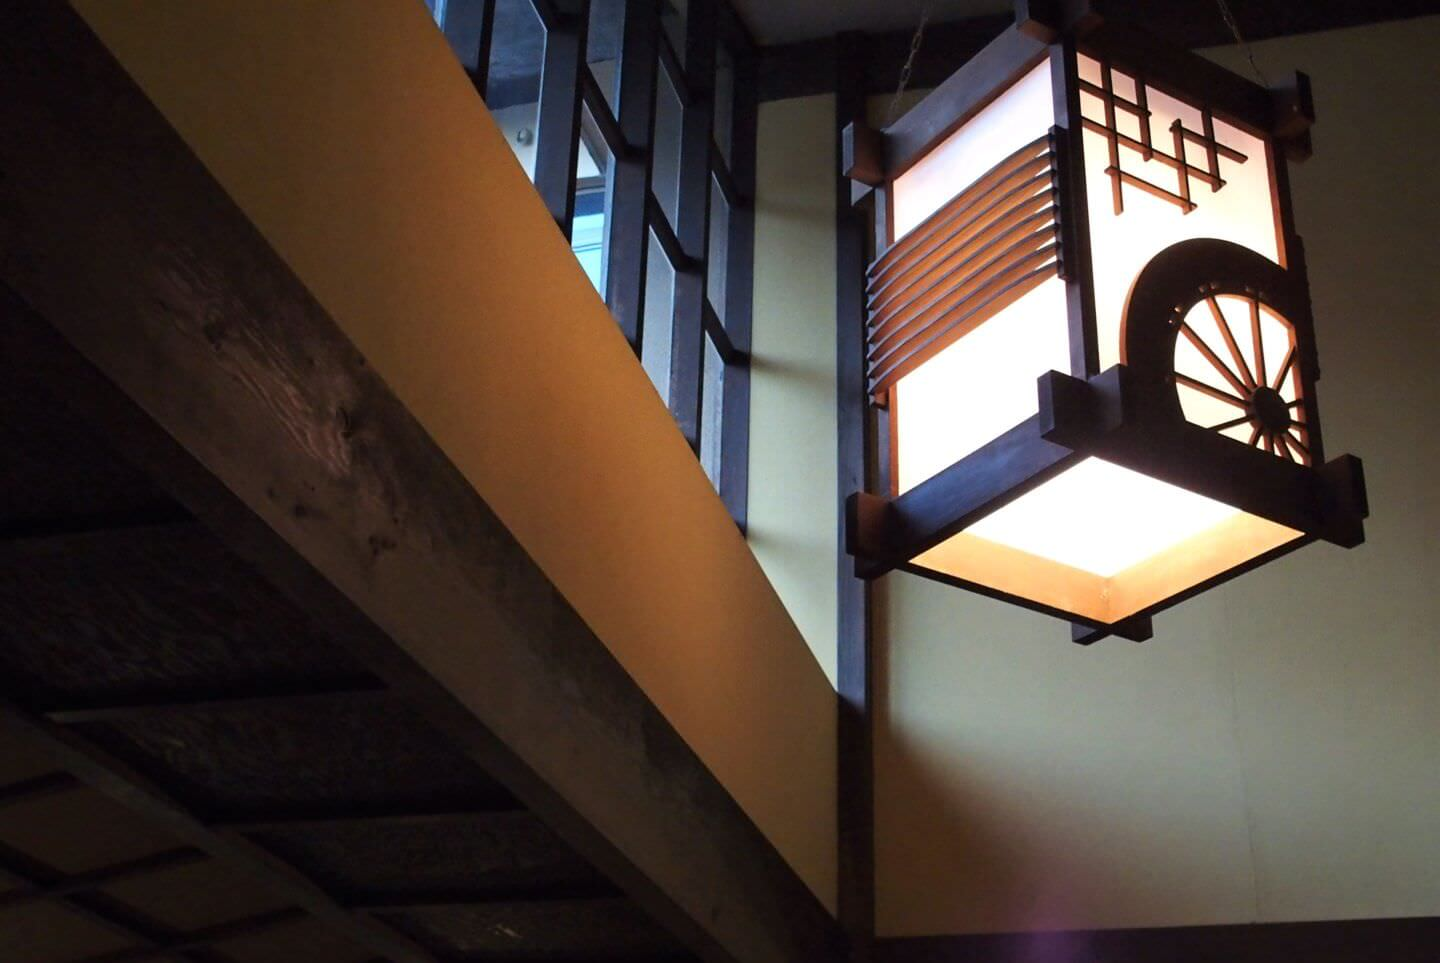 Looking up at the light in the lobby